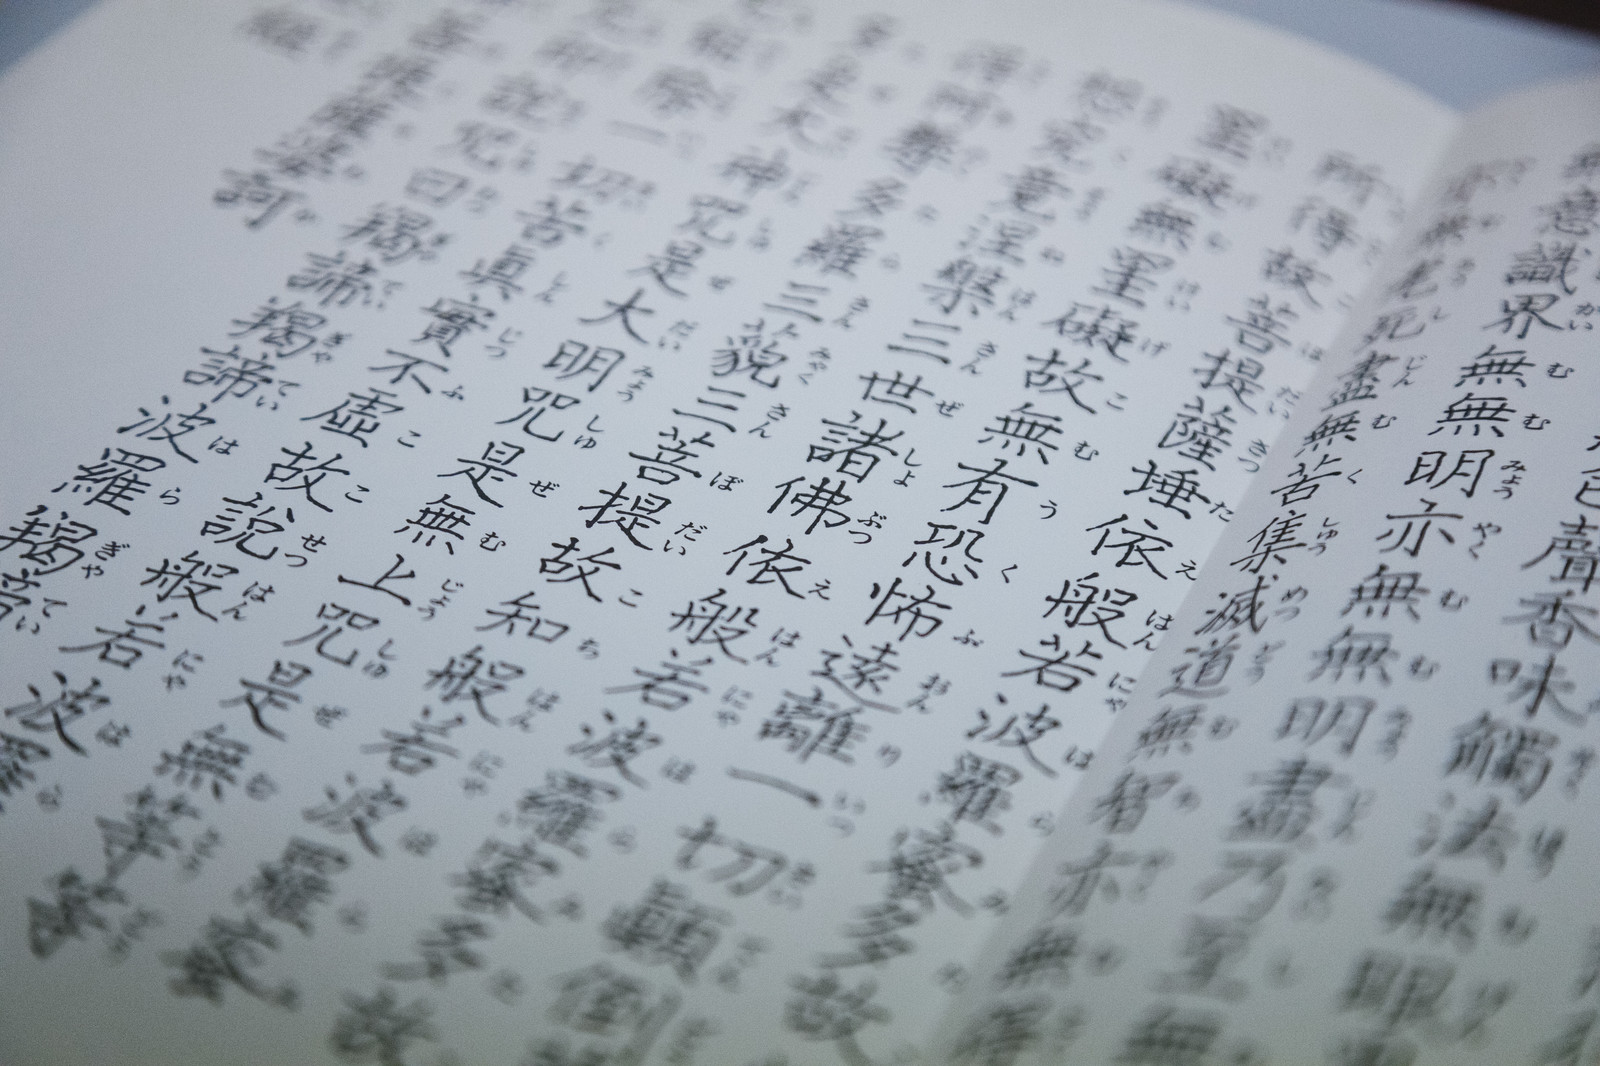 Kanji words written on a textbook.